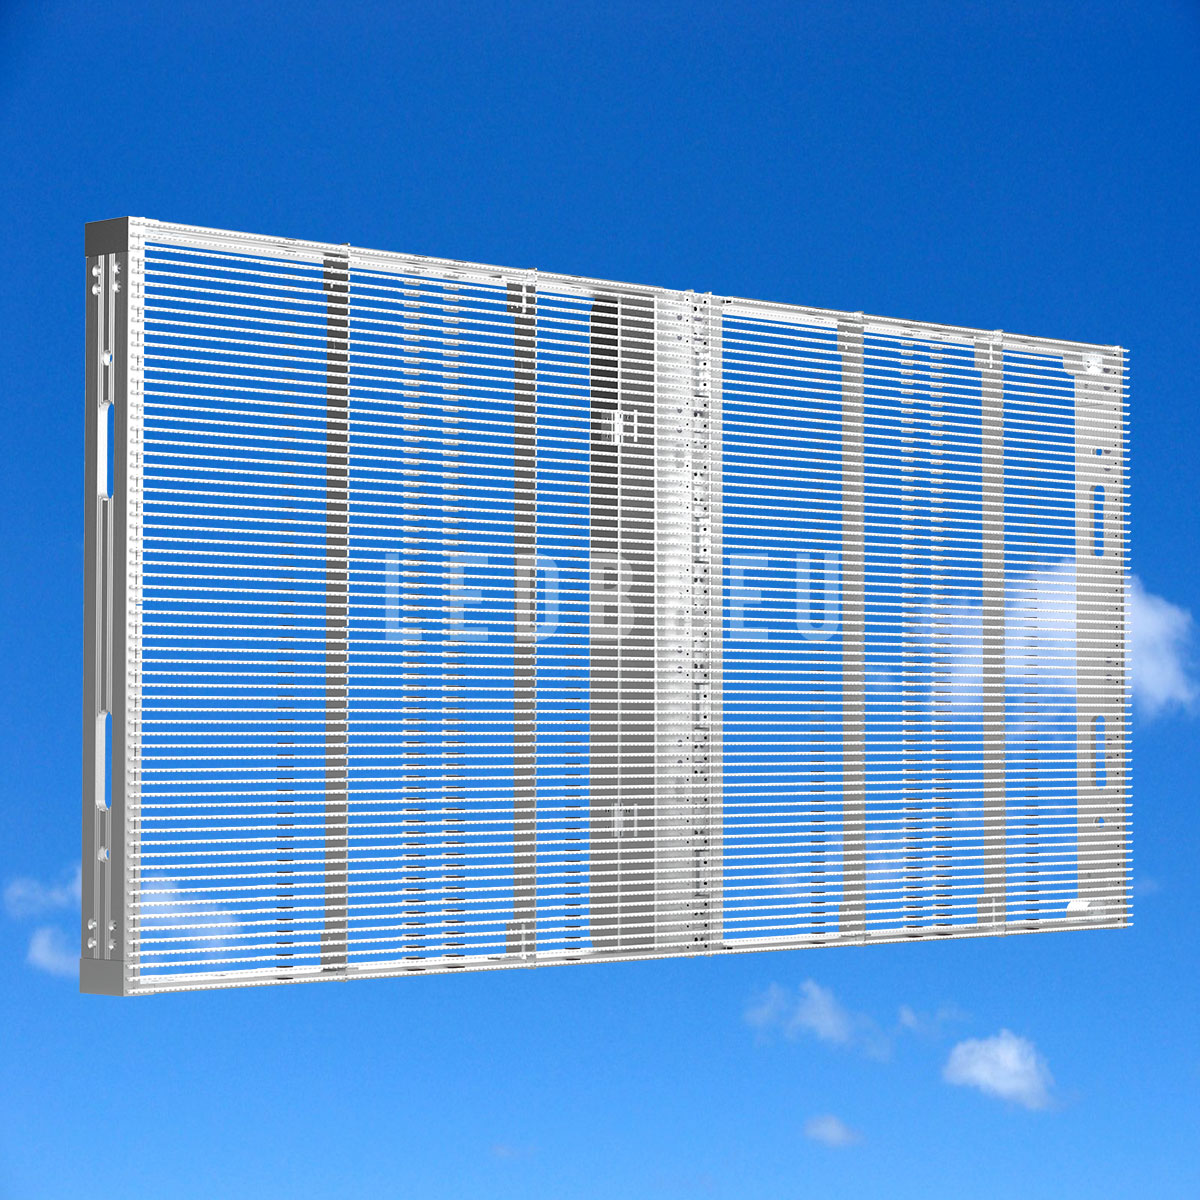 Dalle écran led semi transparent LEDBLEU Vue avant 100x50